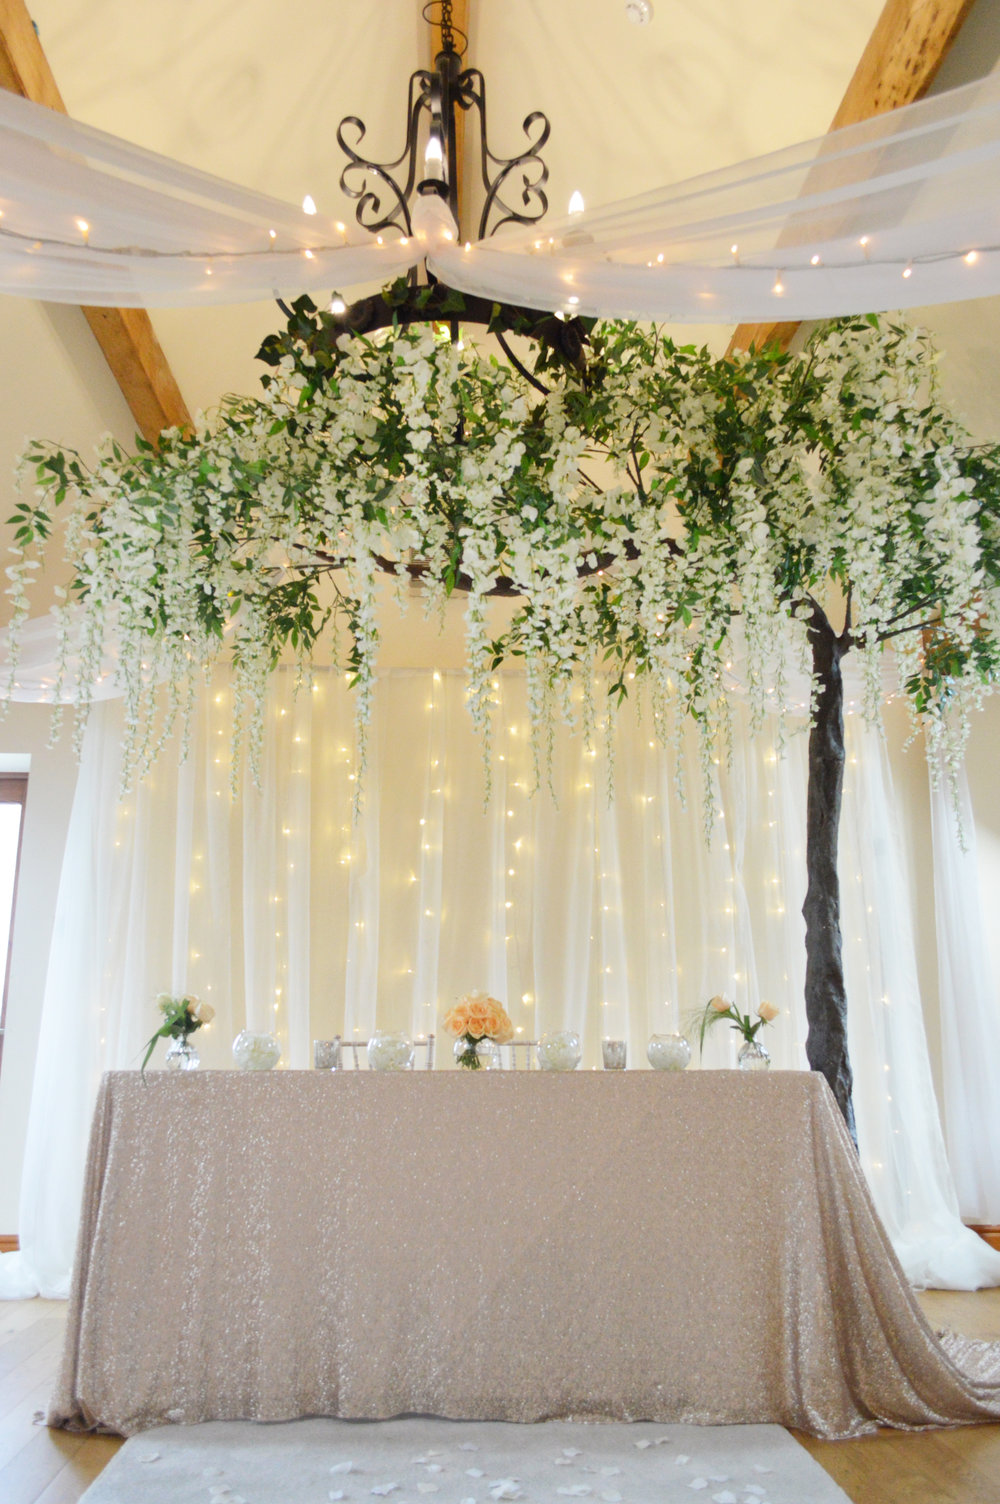 Fairy light backdrop, registar sequin table cloth and wisteria hanging tree